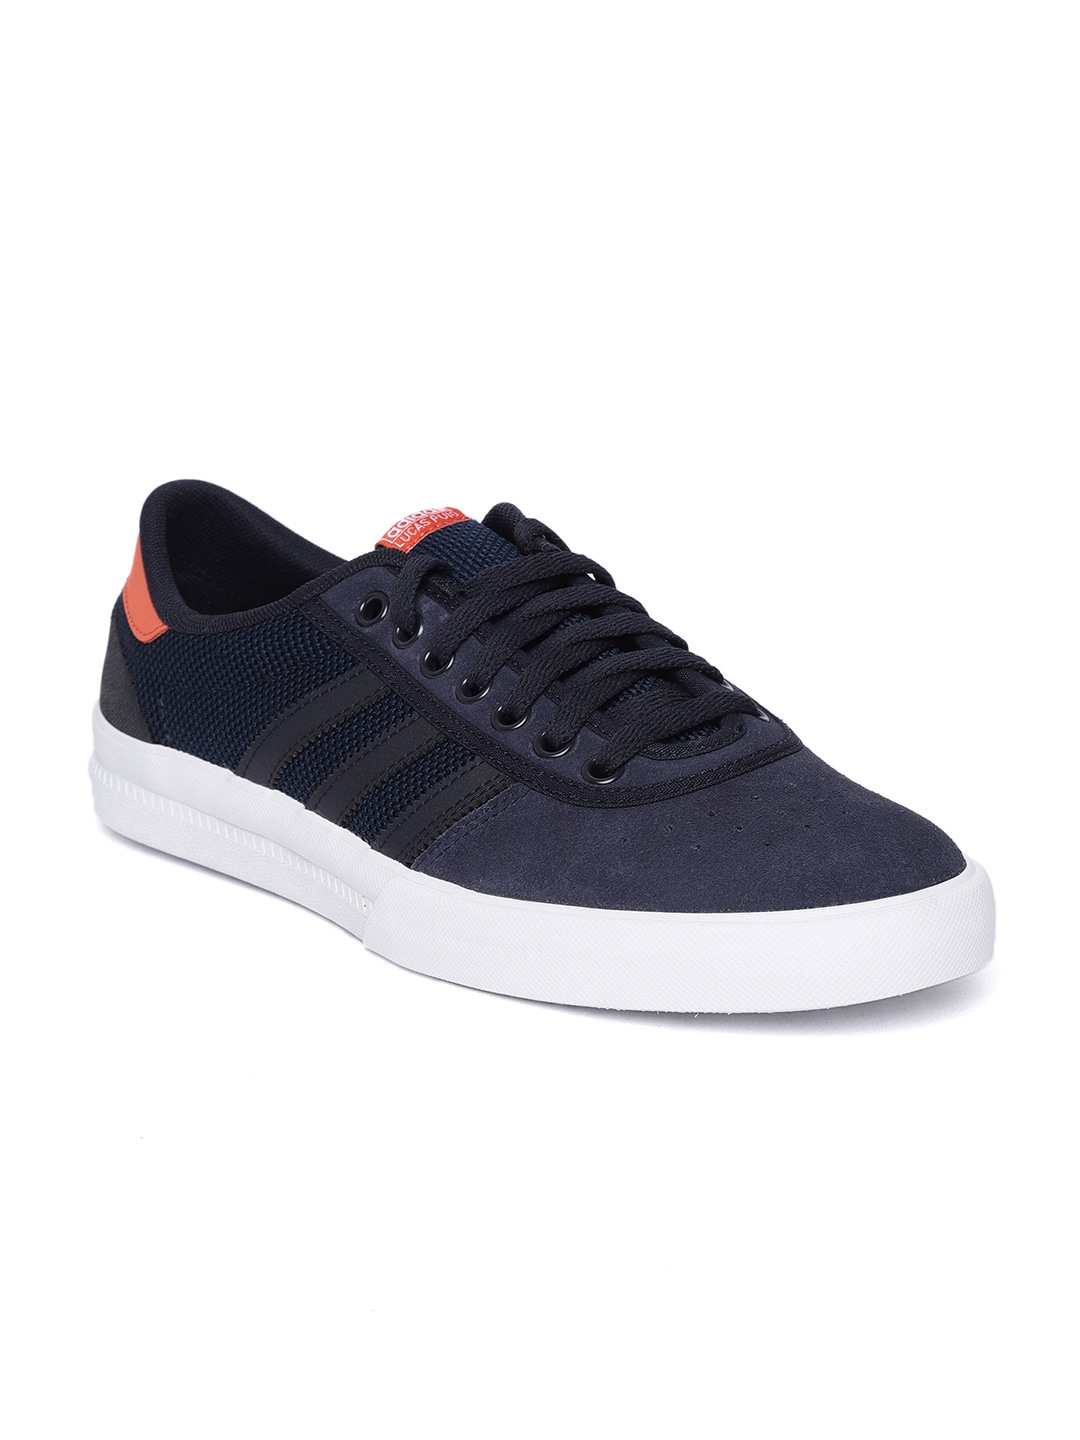 dd3edc3e7141 Adidas Footwear - Buy Adidas Footwear Online in India